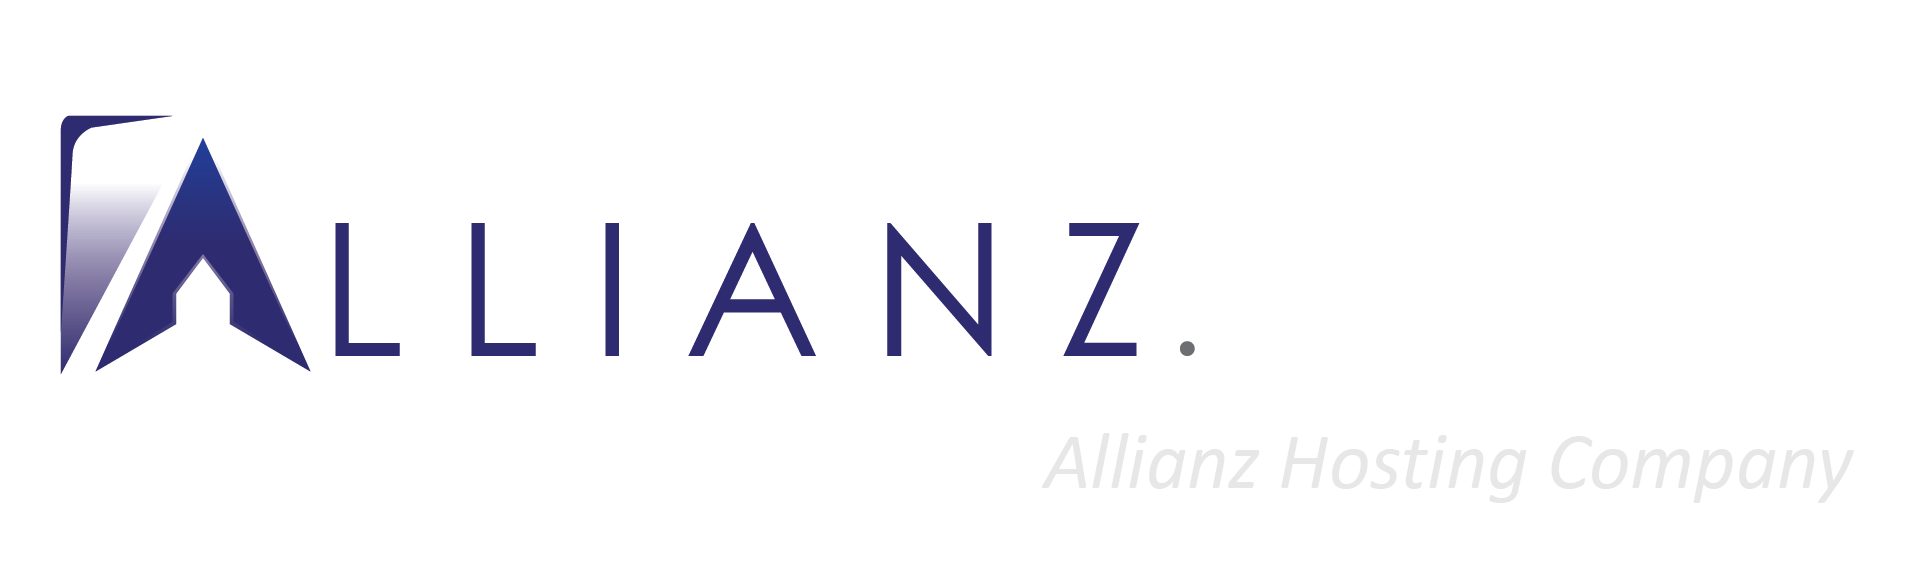 Allianz Cloud :: Allianz Hosting